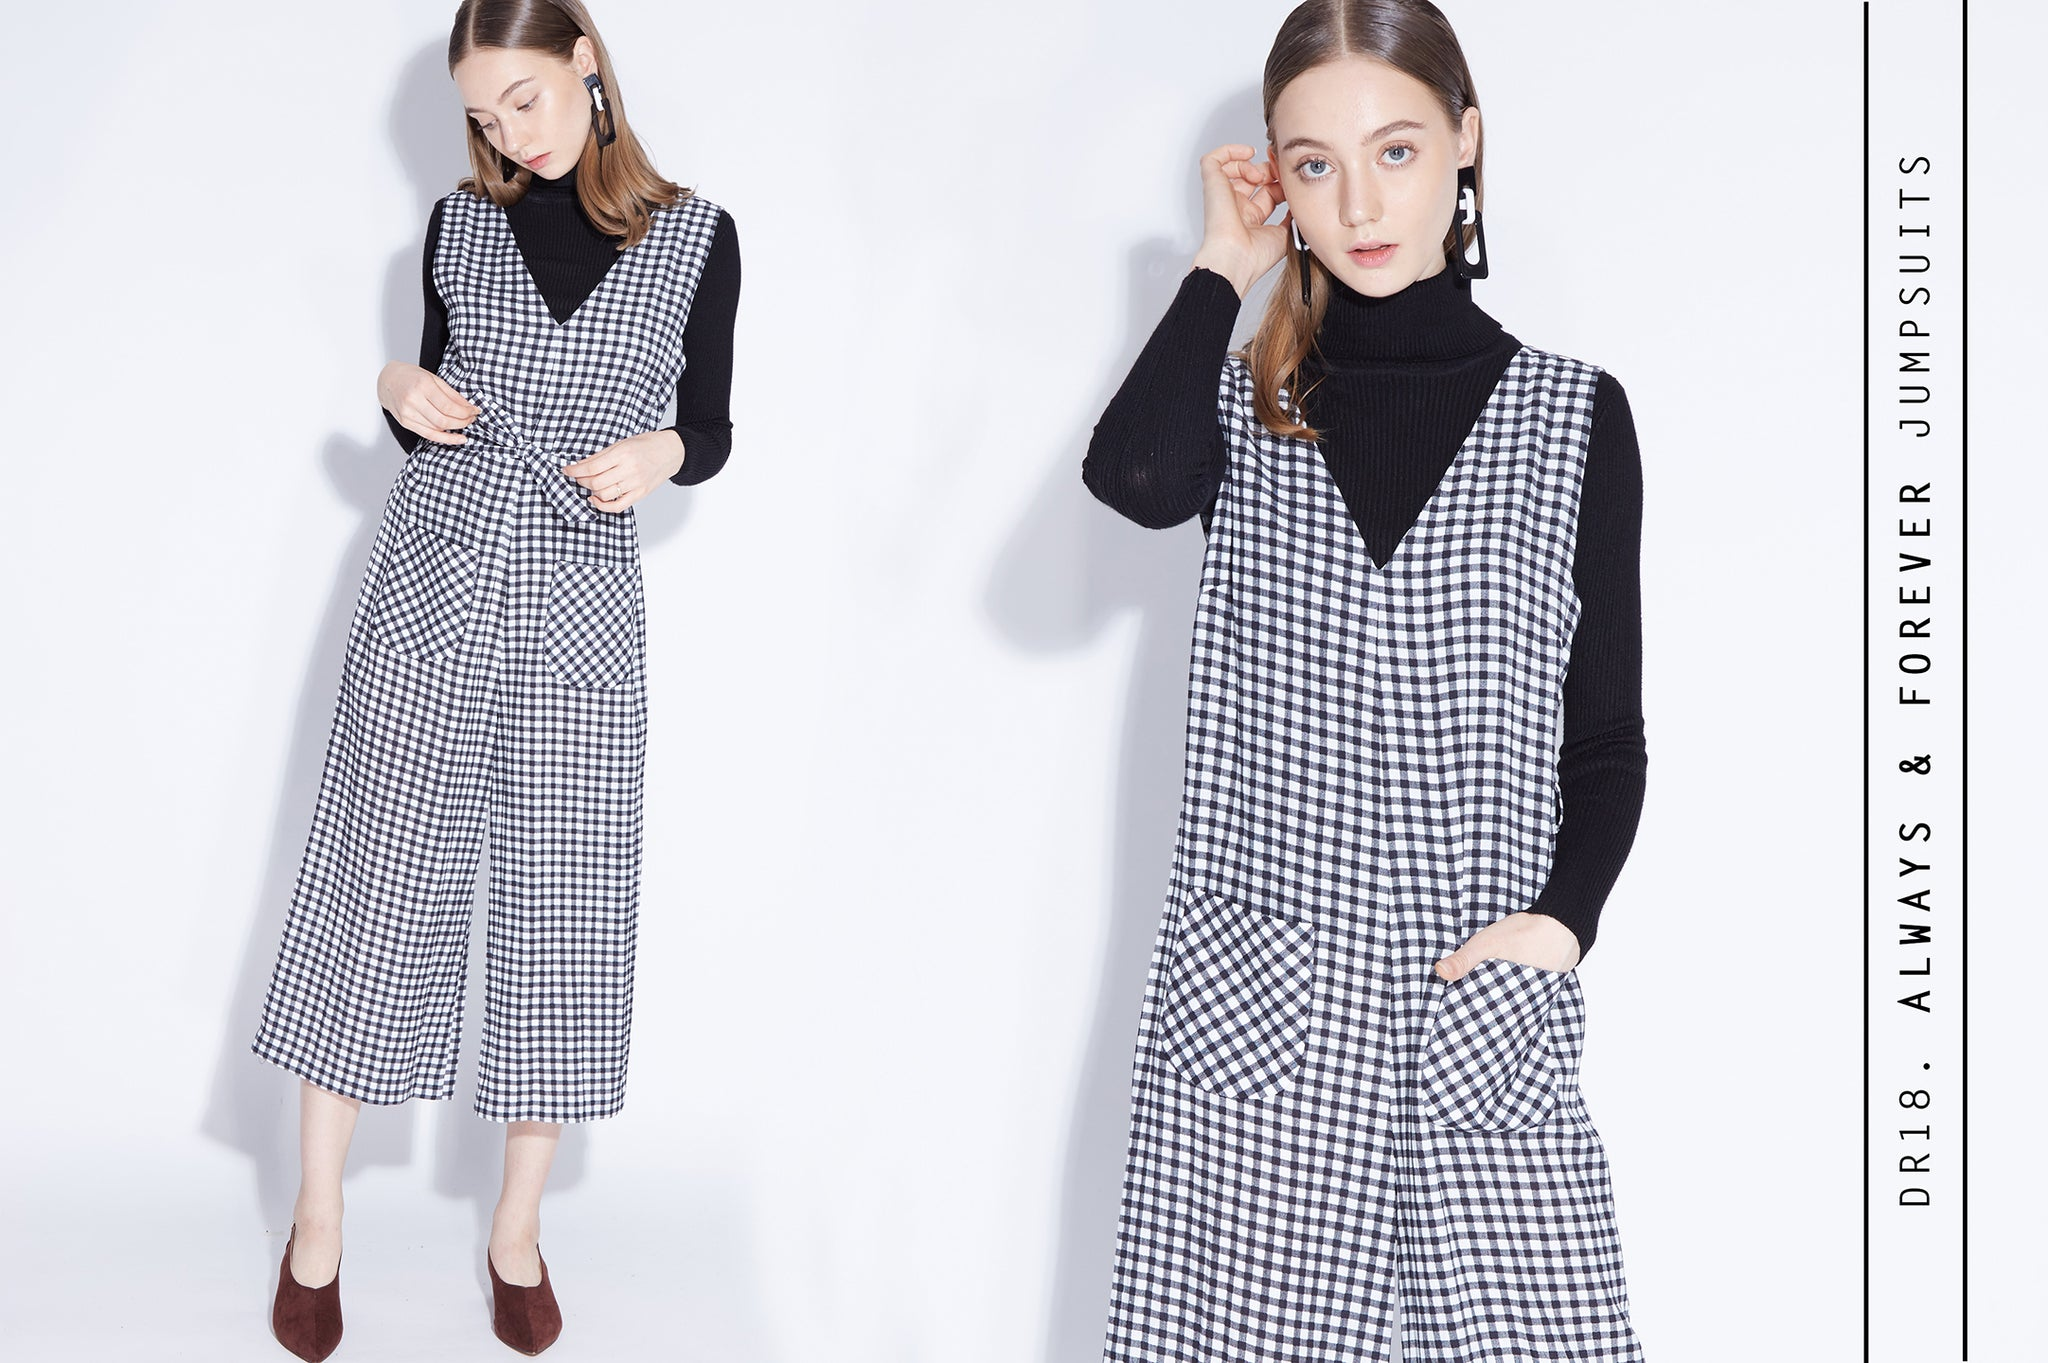 ALWAYS & FOREVER gingham jumpsuits